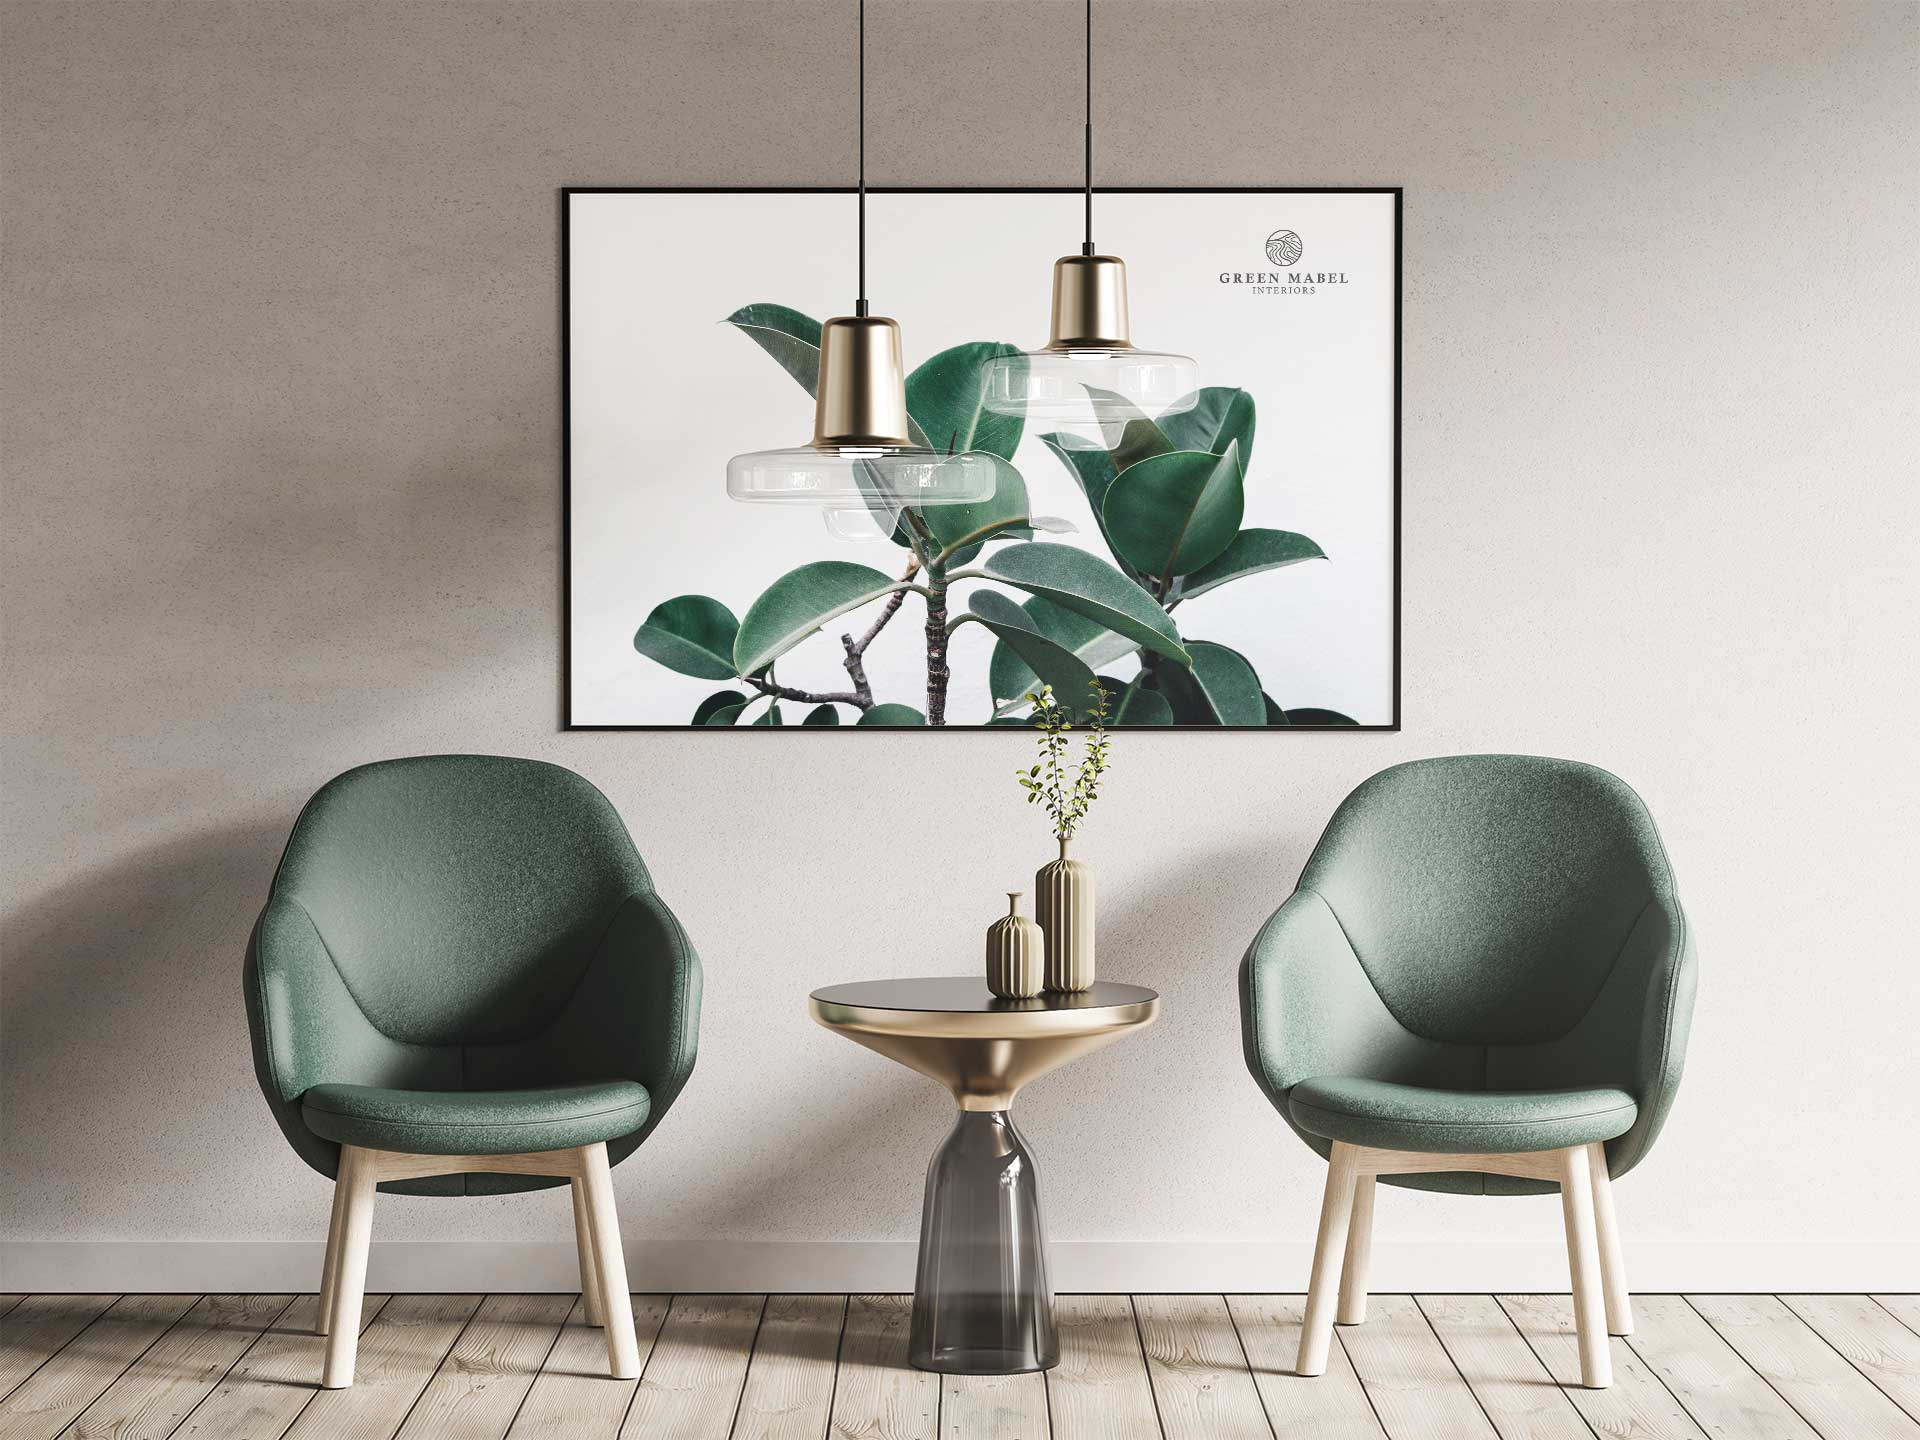 Green Mabel Chairs Poster